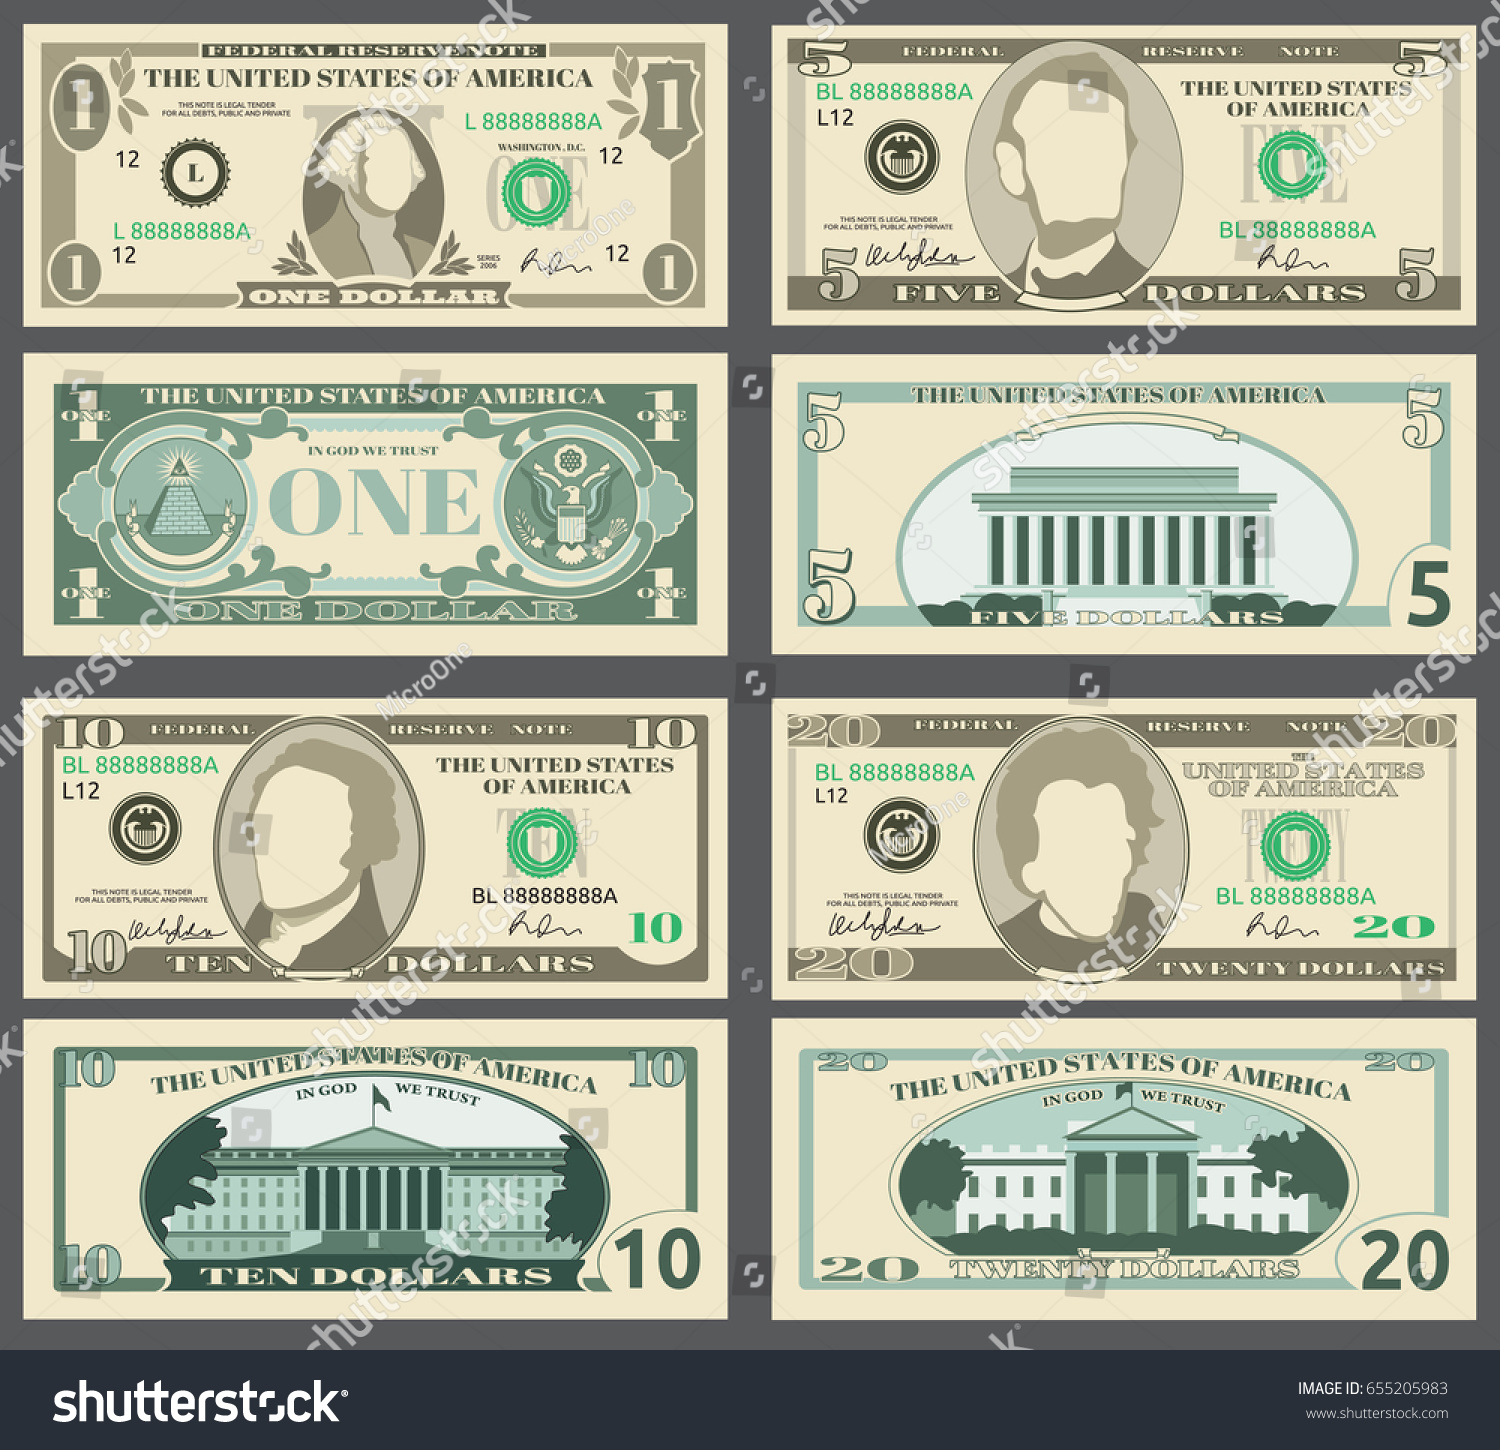 dollar banknotes us currency money bills set templates of banknotes illustration of american